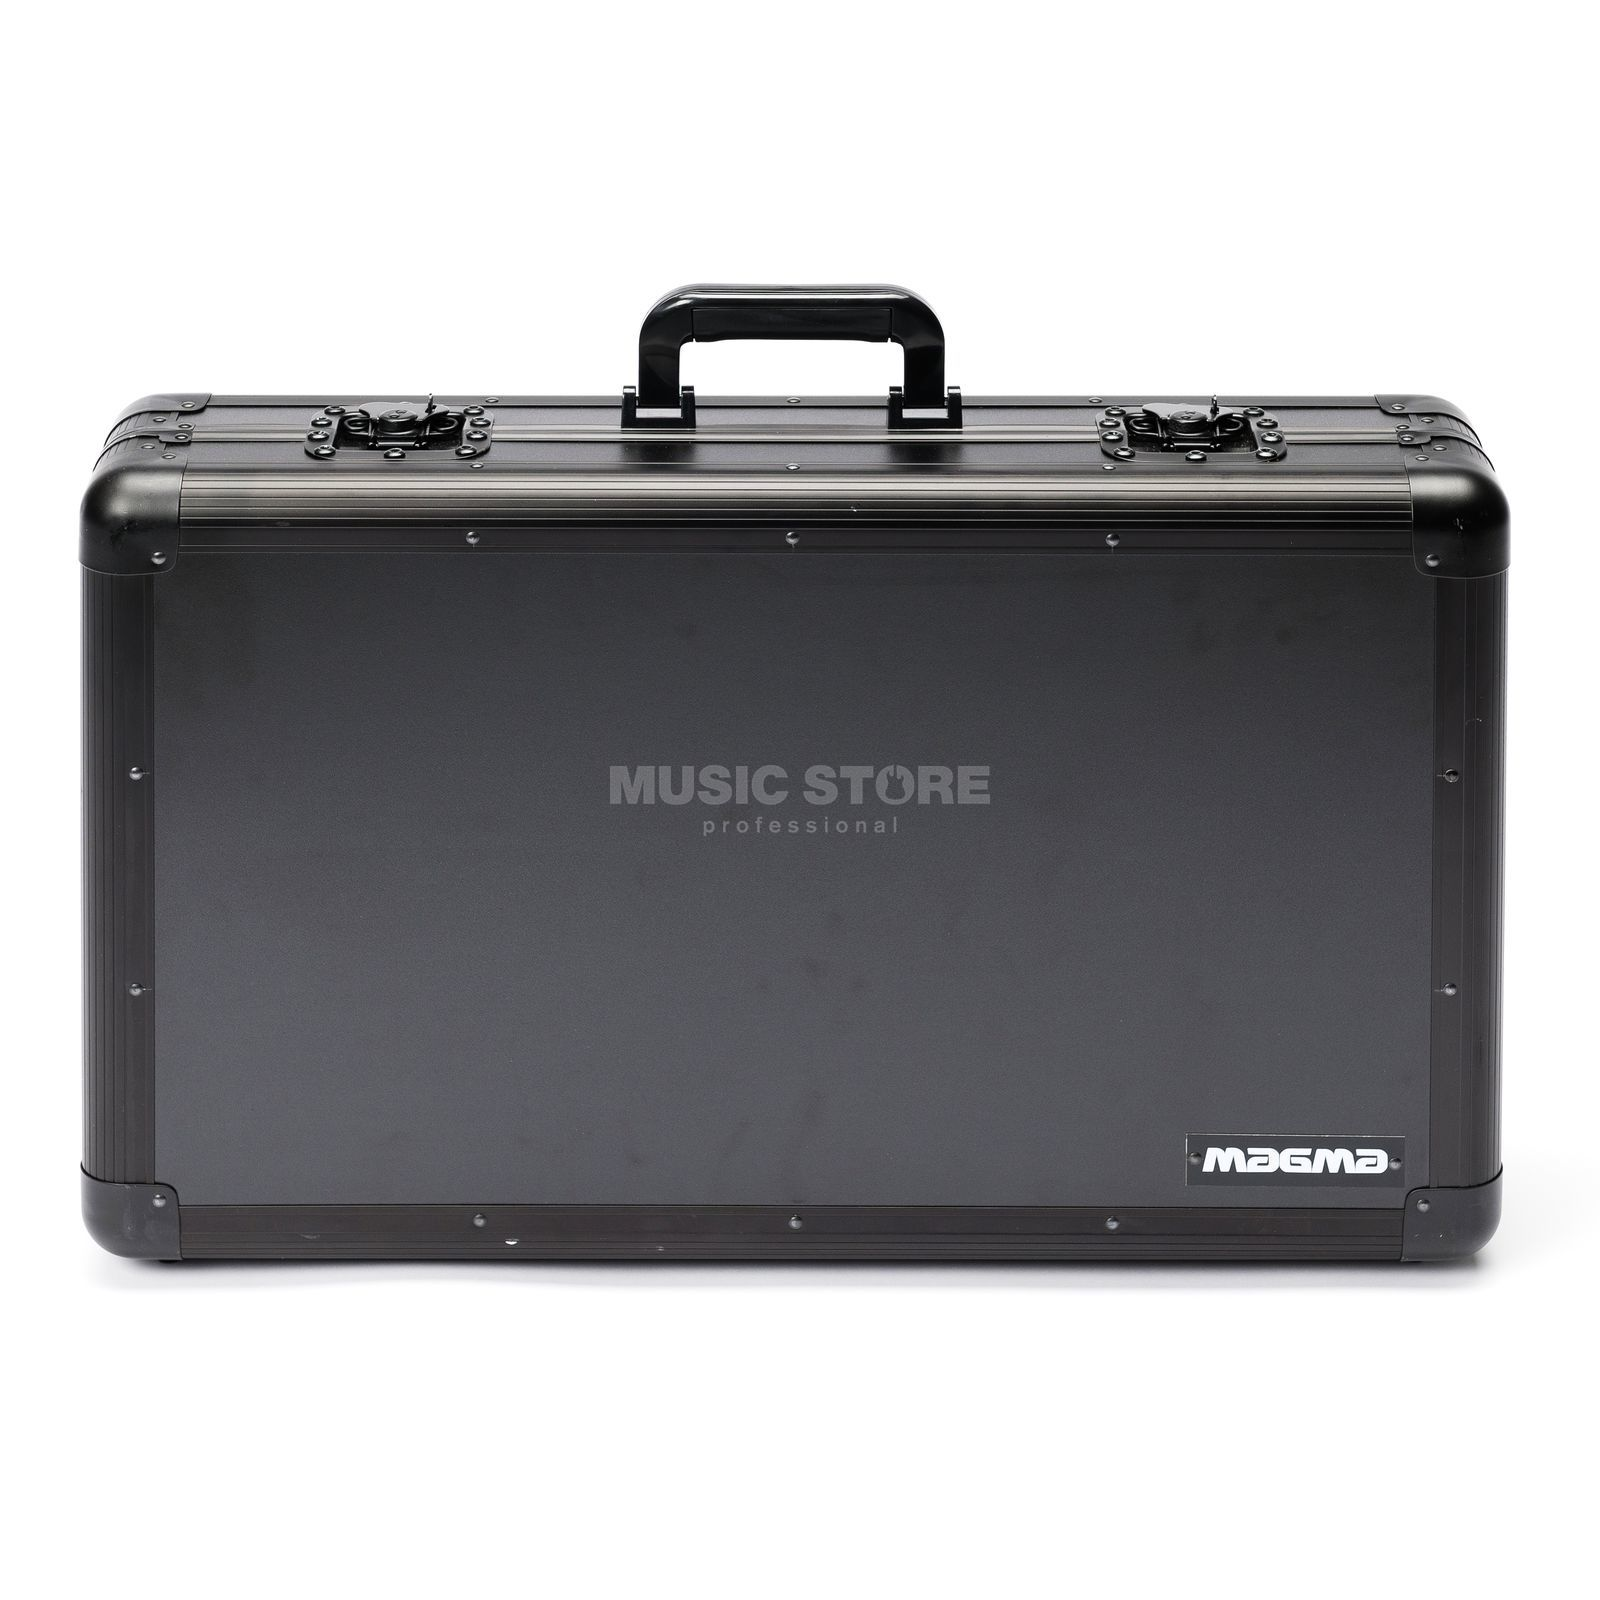 Magma Carrylite DJ-Case XL Plus Product Image